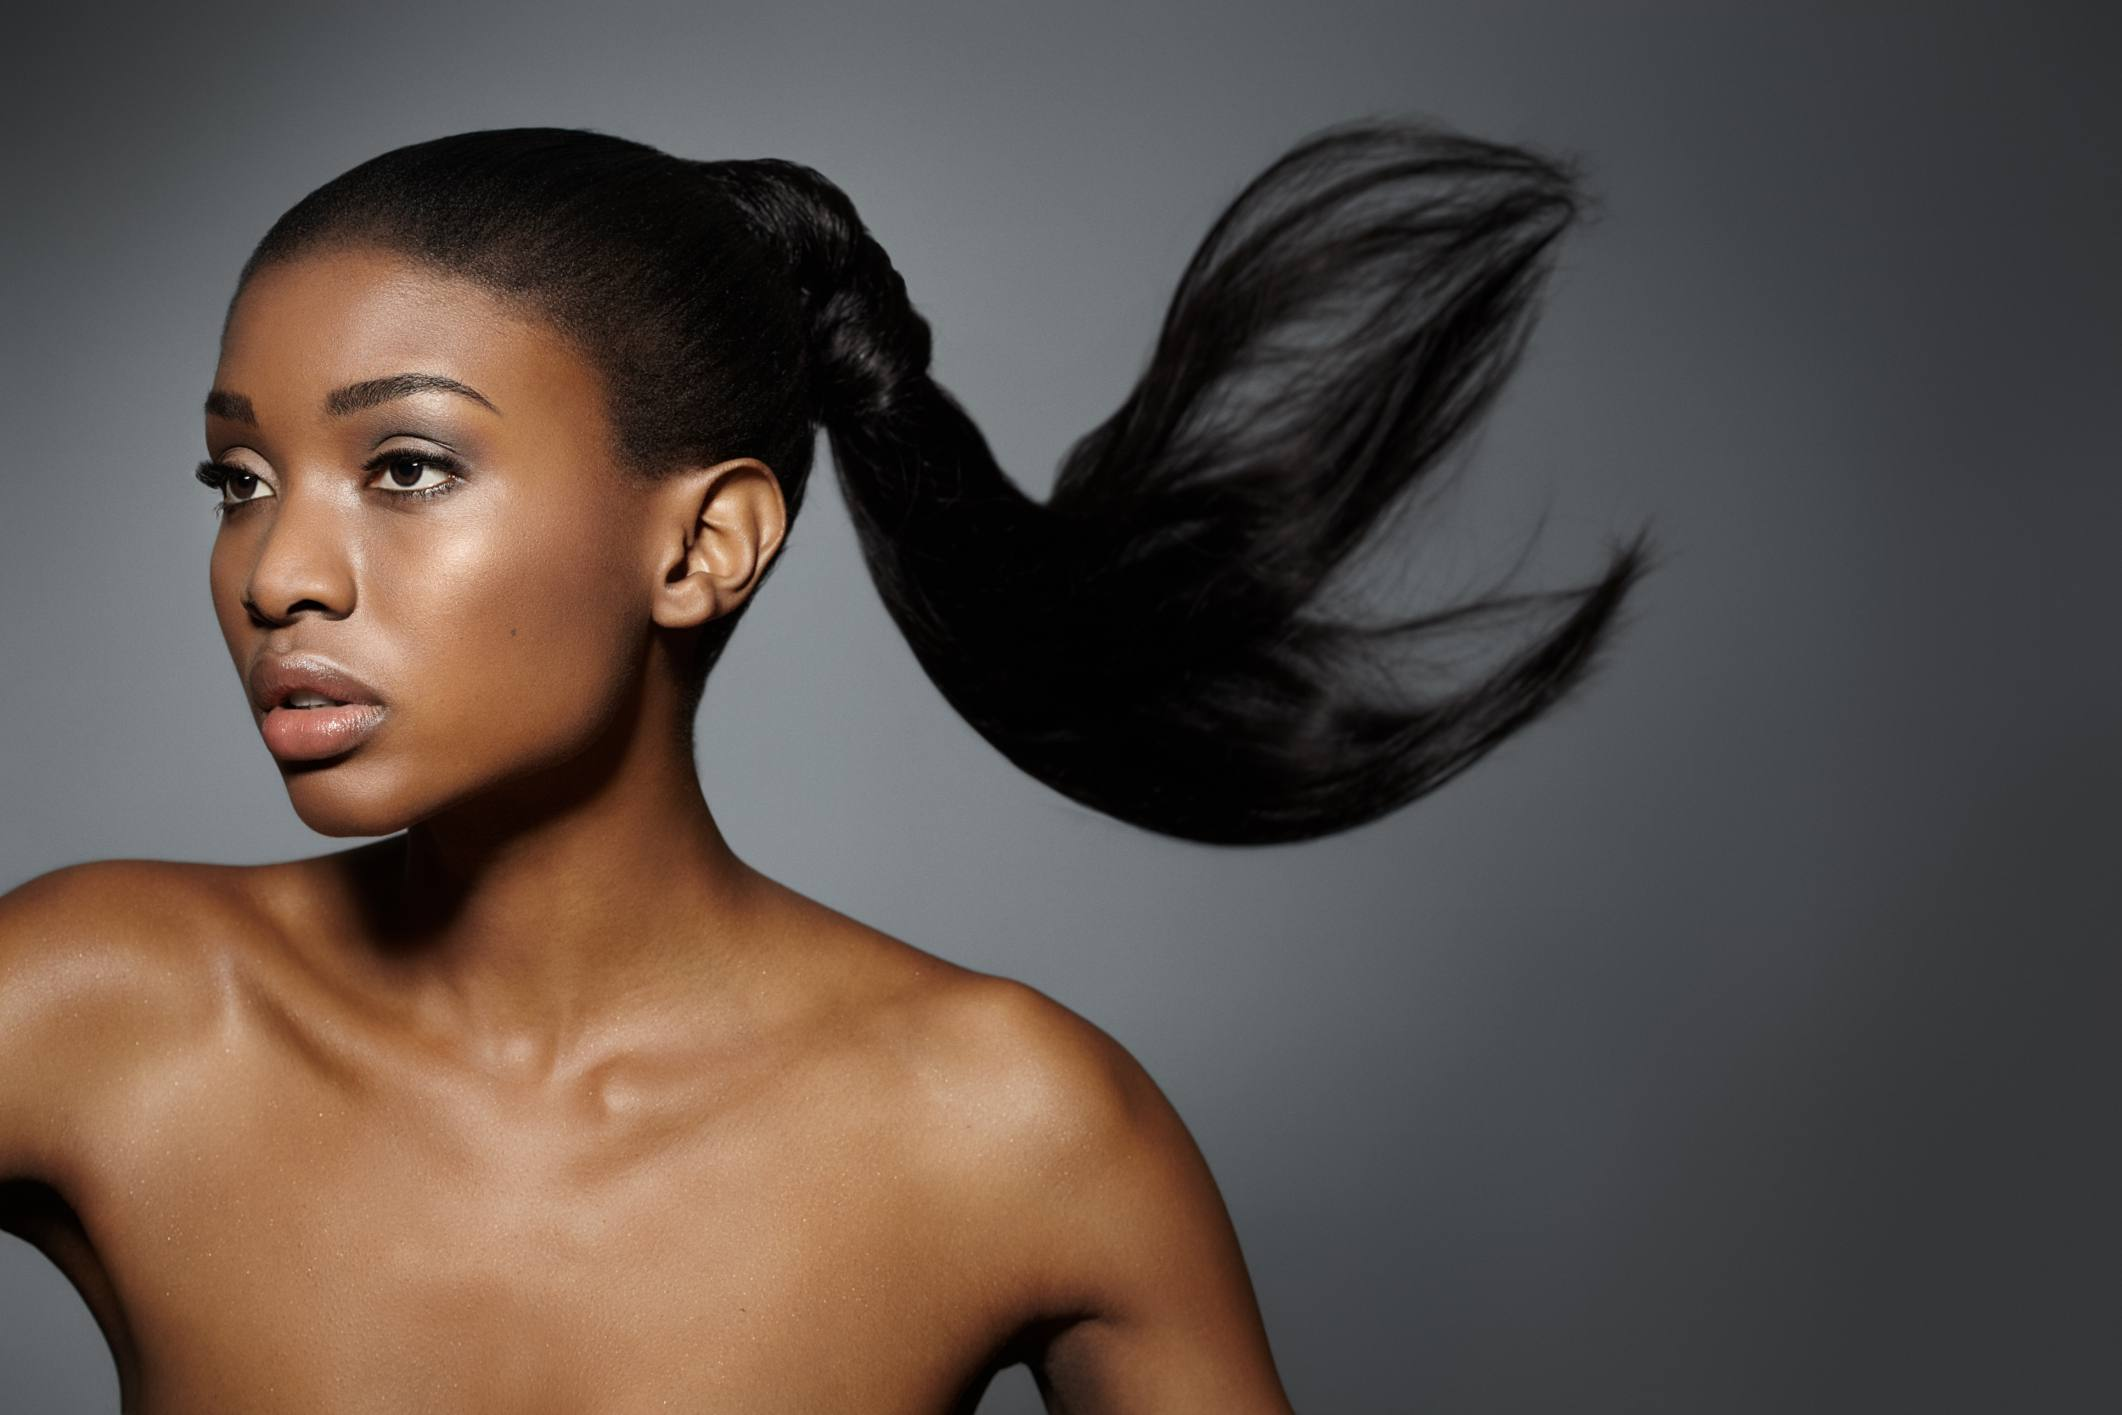 Model with her hair in ponytail